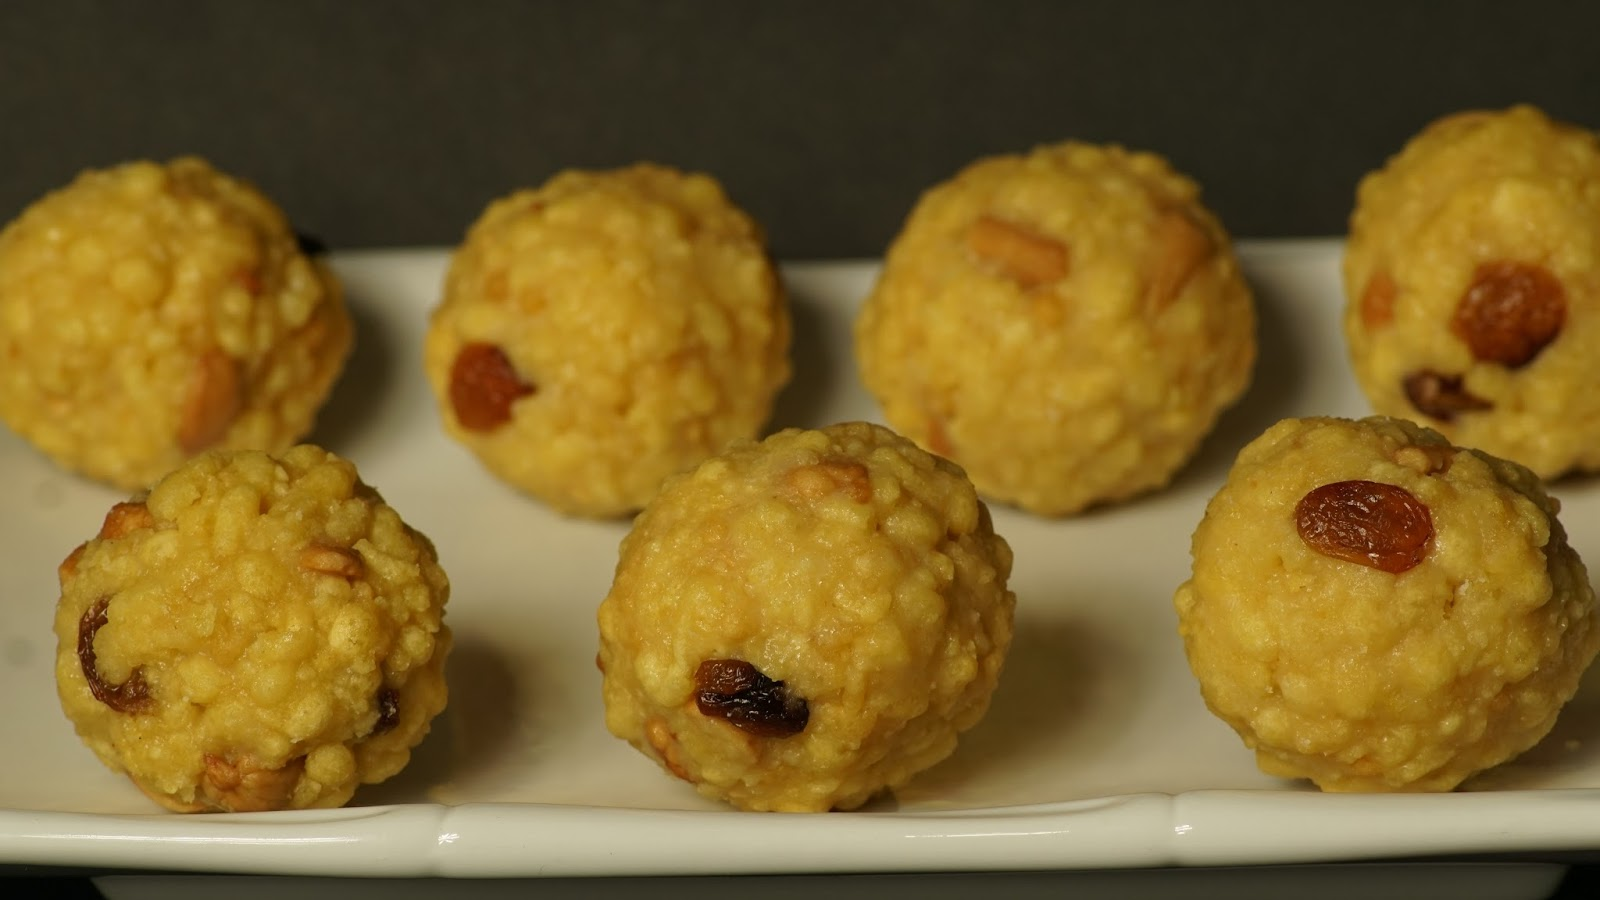 Boondi laddu recipe steffis recipes making this recipe ladoo once i finish making boondis the boondis will disappear from the plate but fortunately today i got a chance to make laddus forumfinder Choice Image